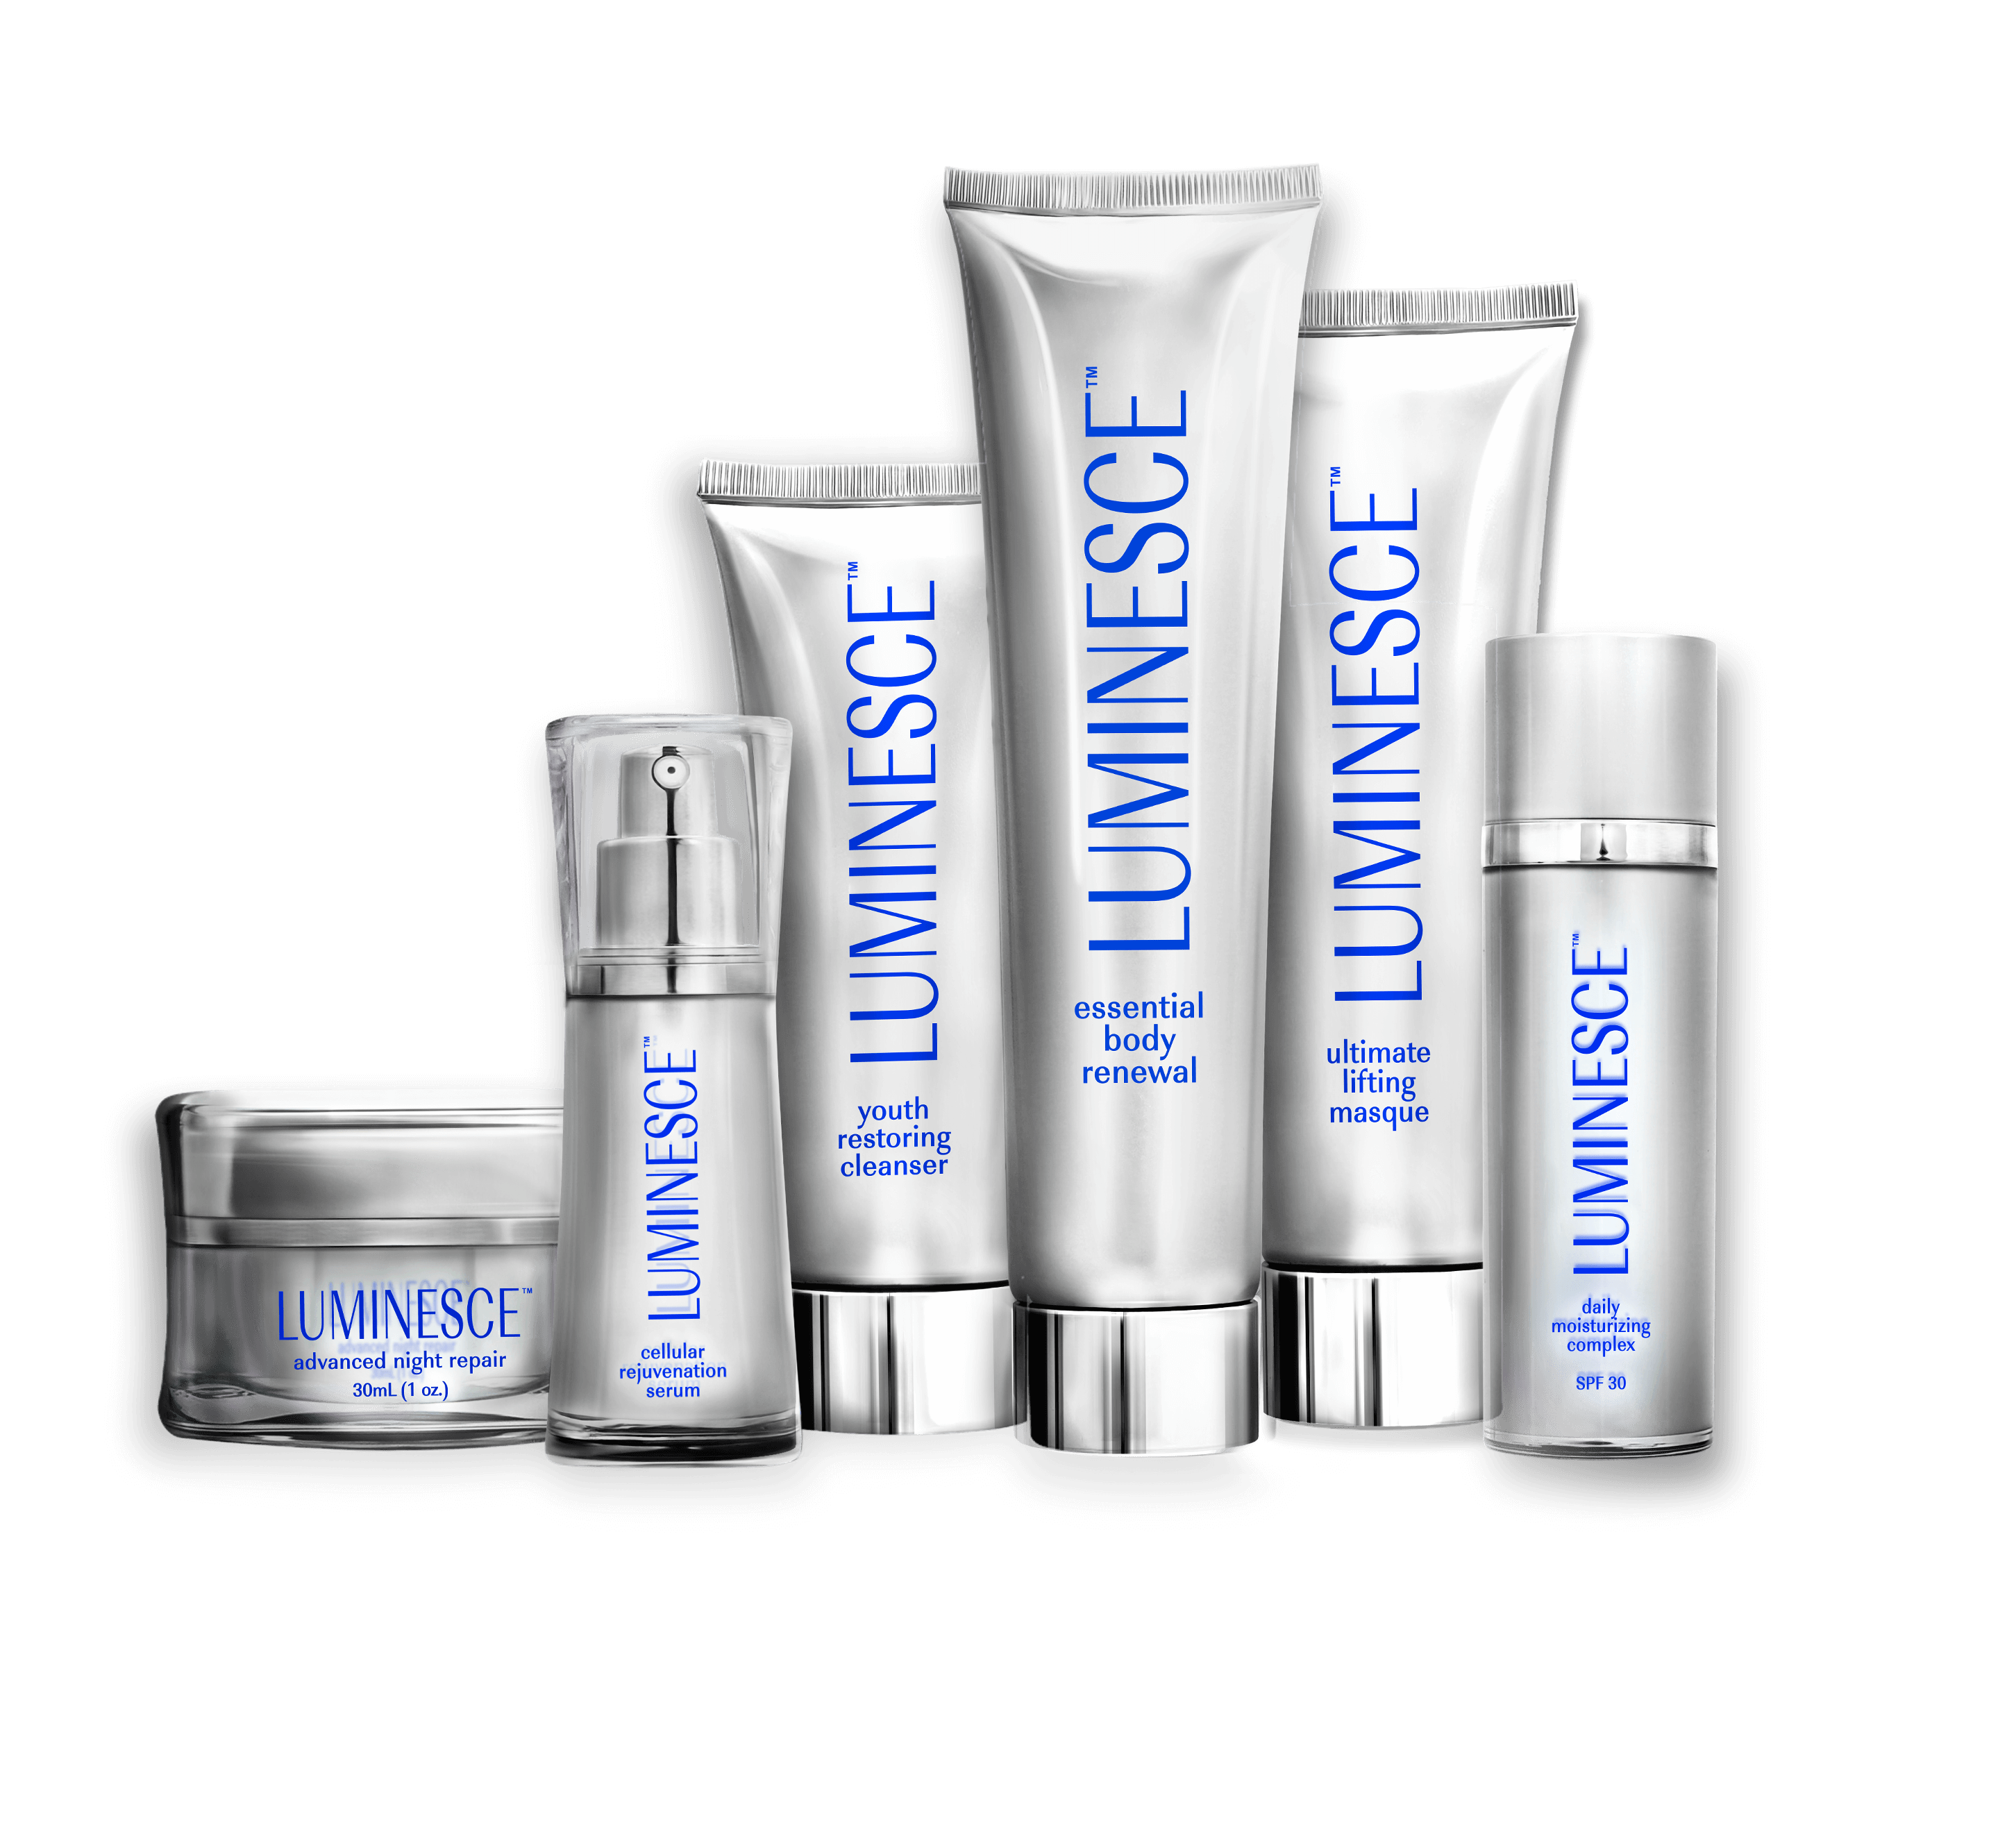 Jeunesse Global Luminesce Skin Care Products